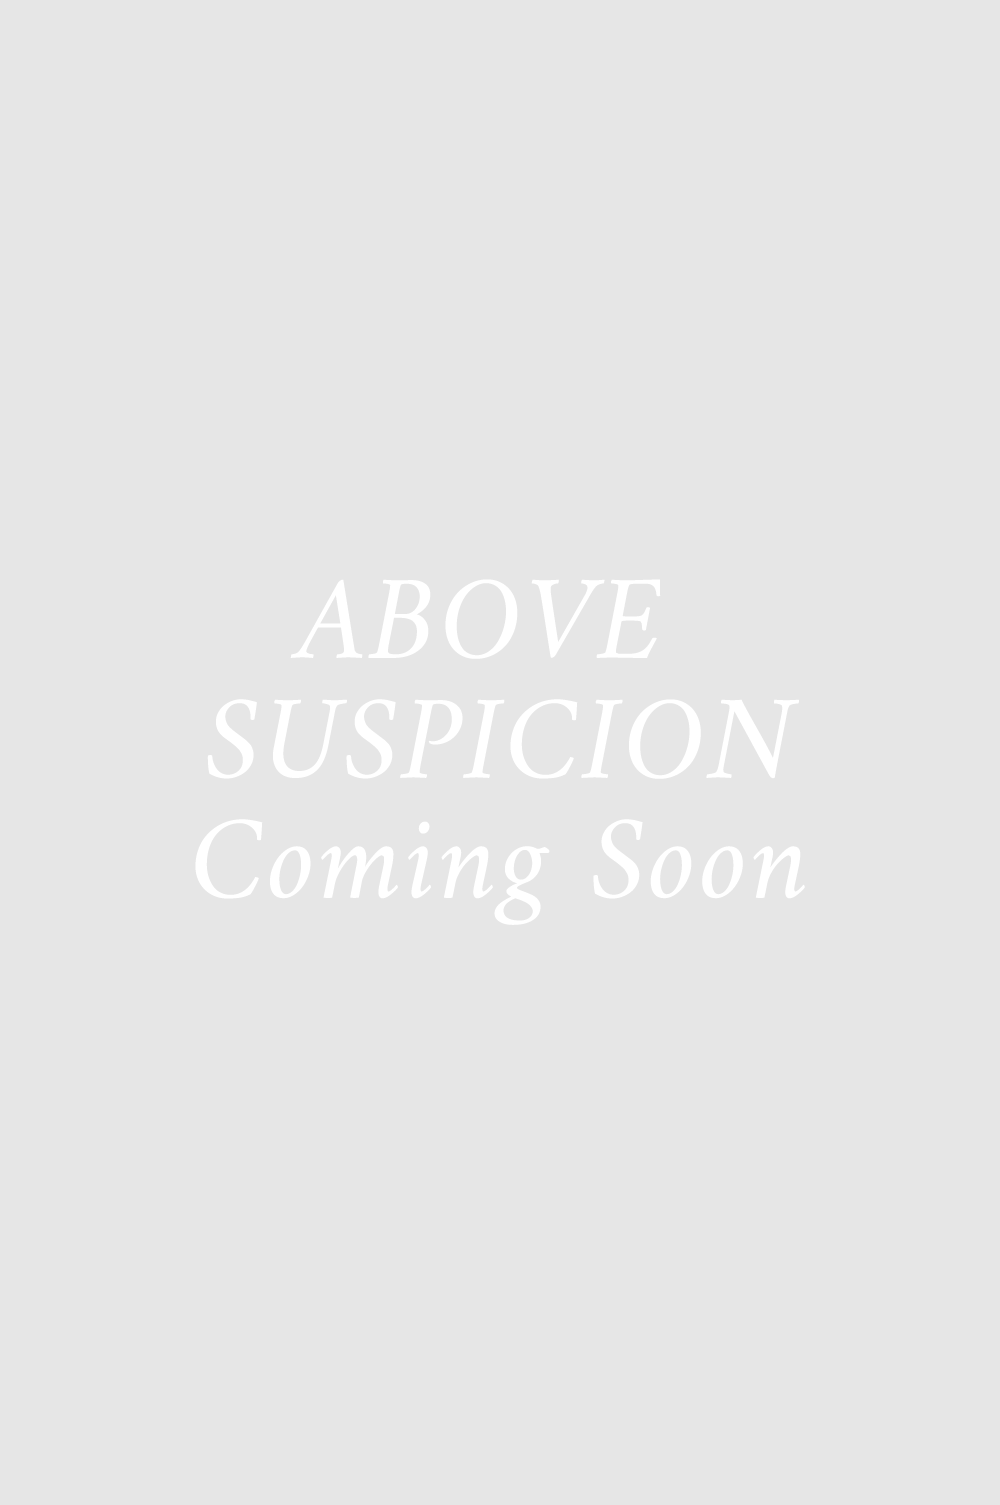 Above Coming Soon